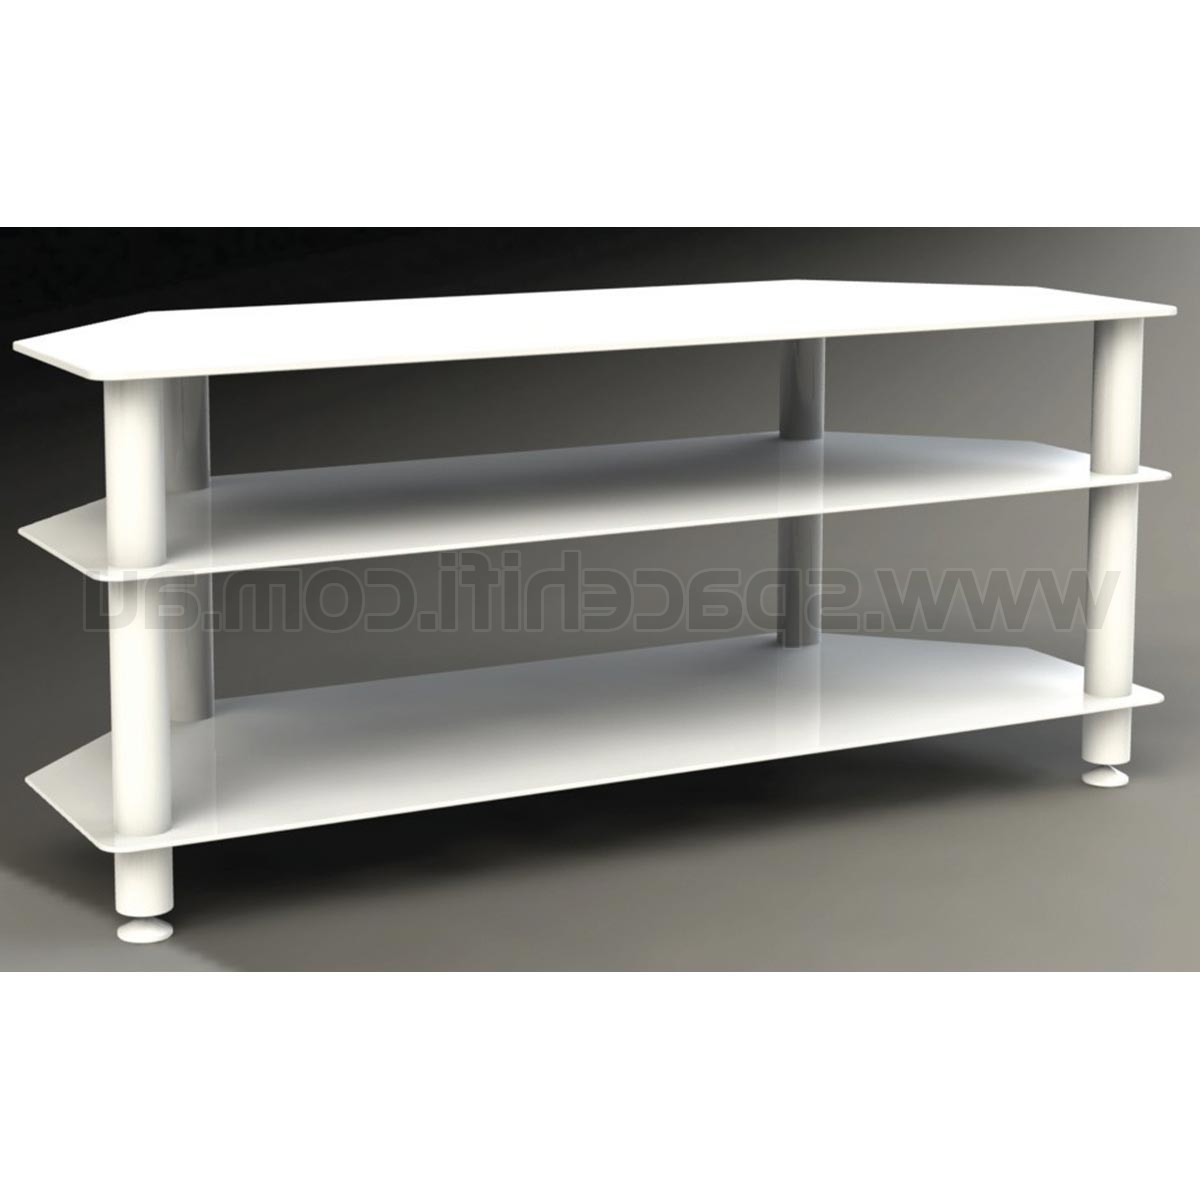 White Glass Tv Stands Inside Newest White And Glass Tv Stand Modern High Gloss Wood Ikea Uk With Led (View 17 of 20)